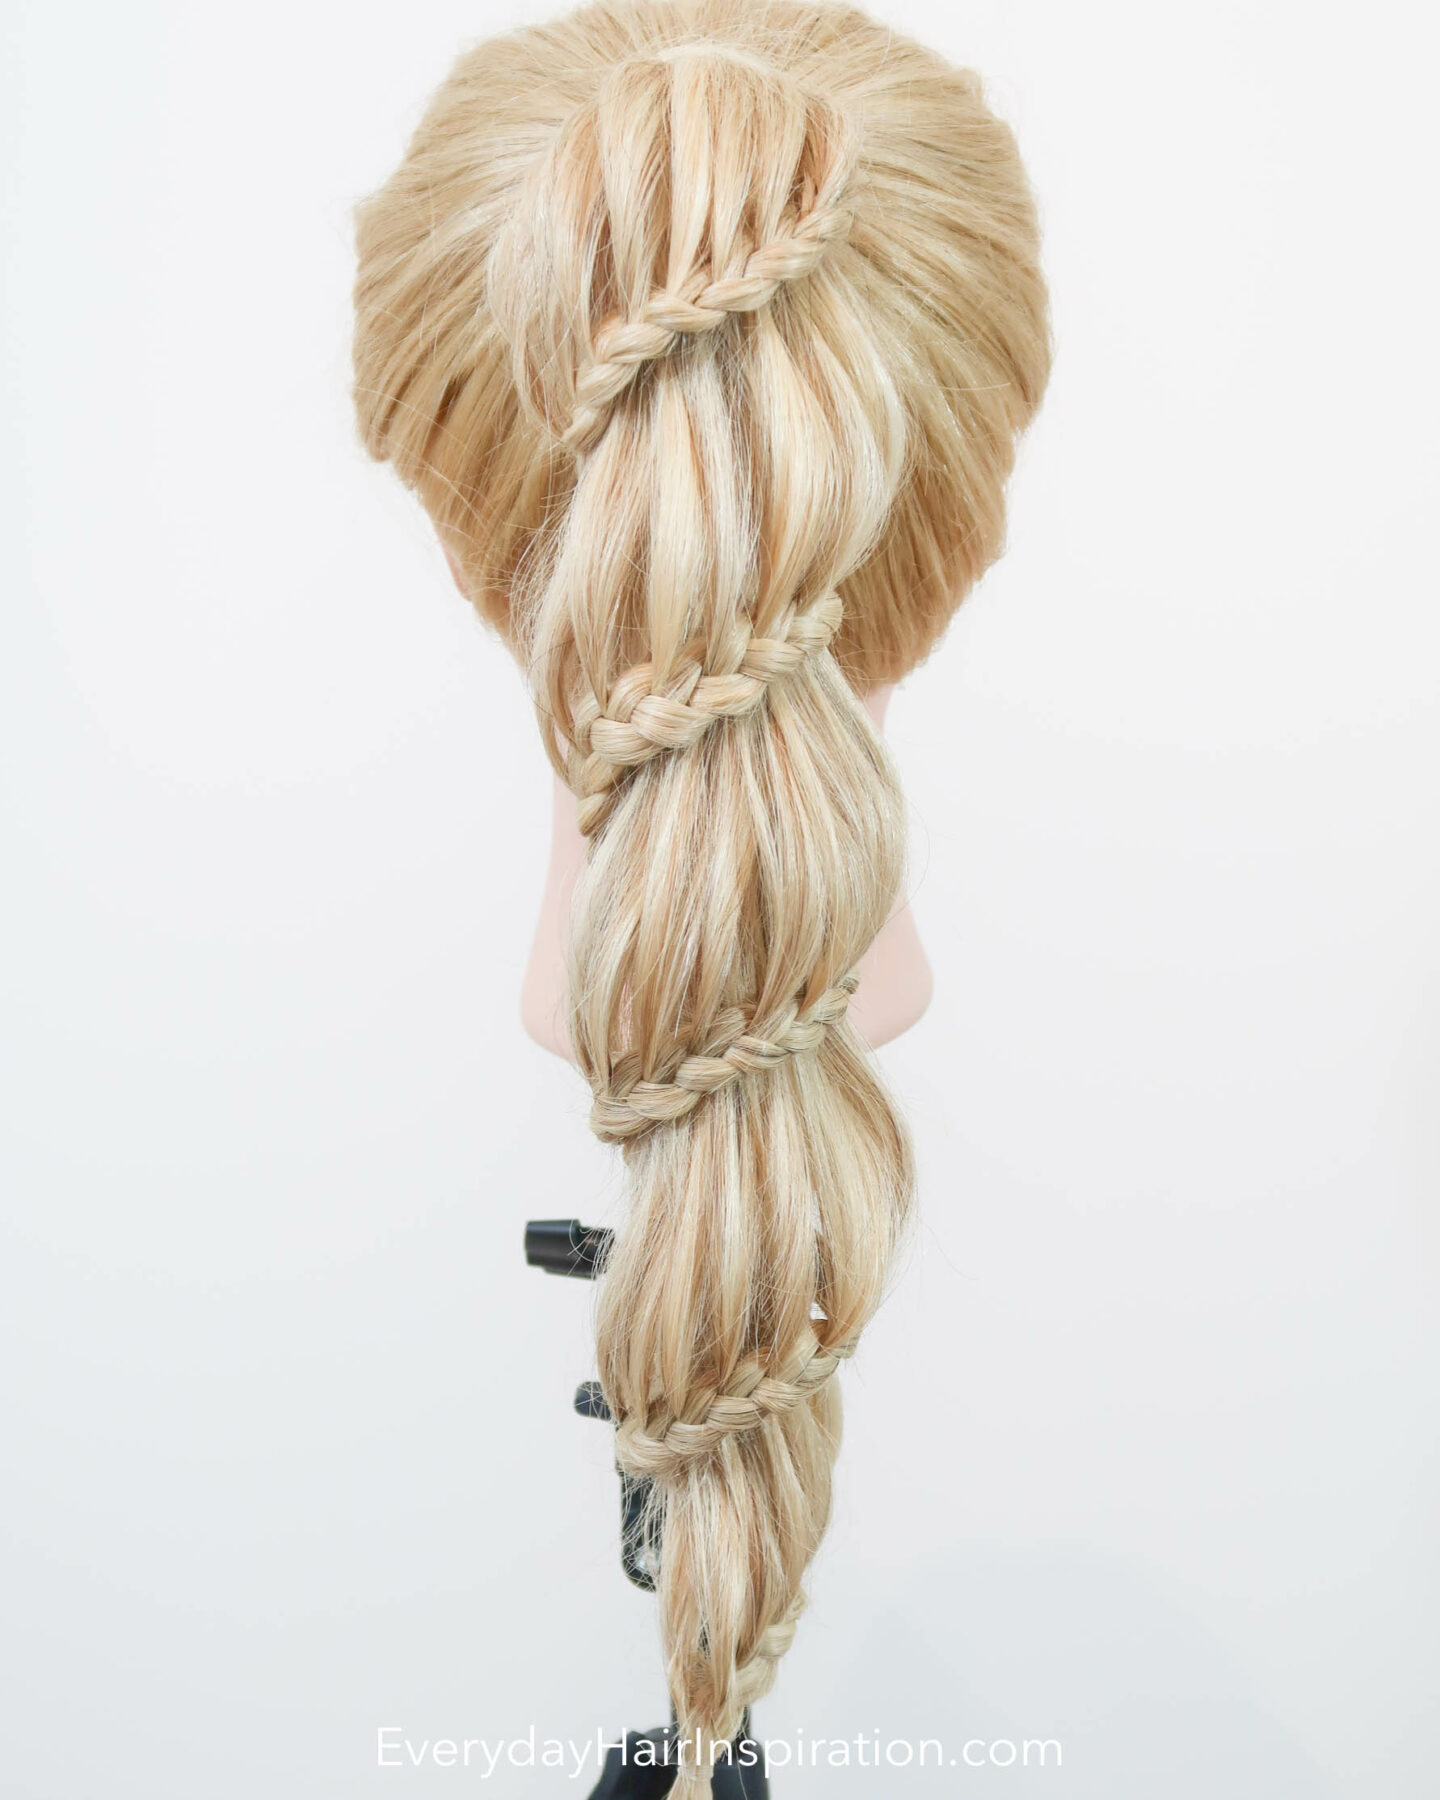 Blonde hairdresser doll seen from the back with a high ponytail. The ponytail is braided into a spiral braid, the wraps around the ponytail all the way down.